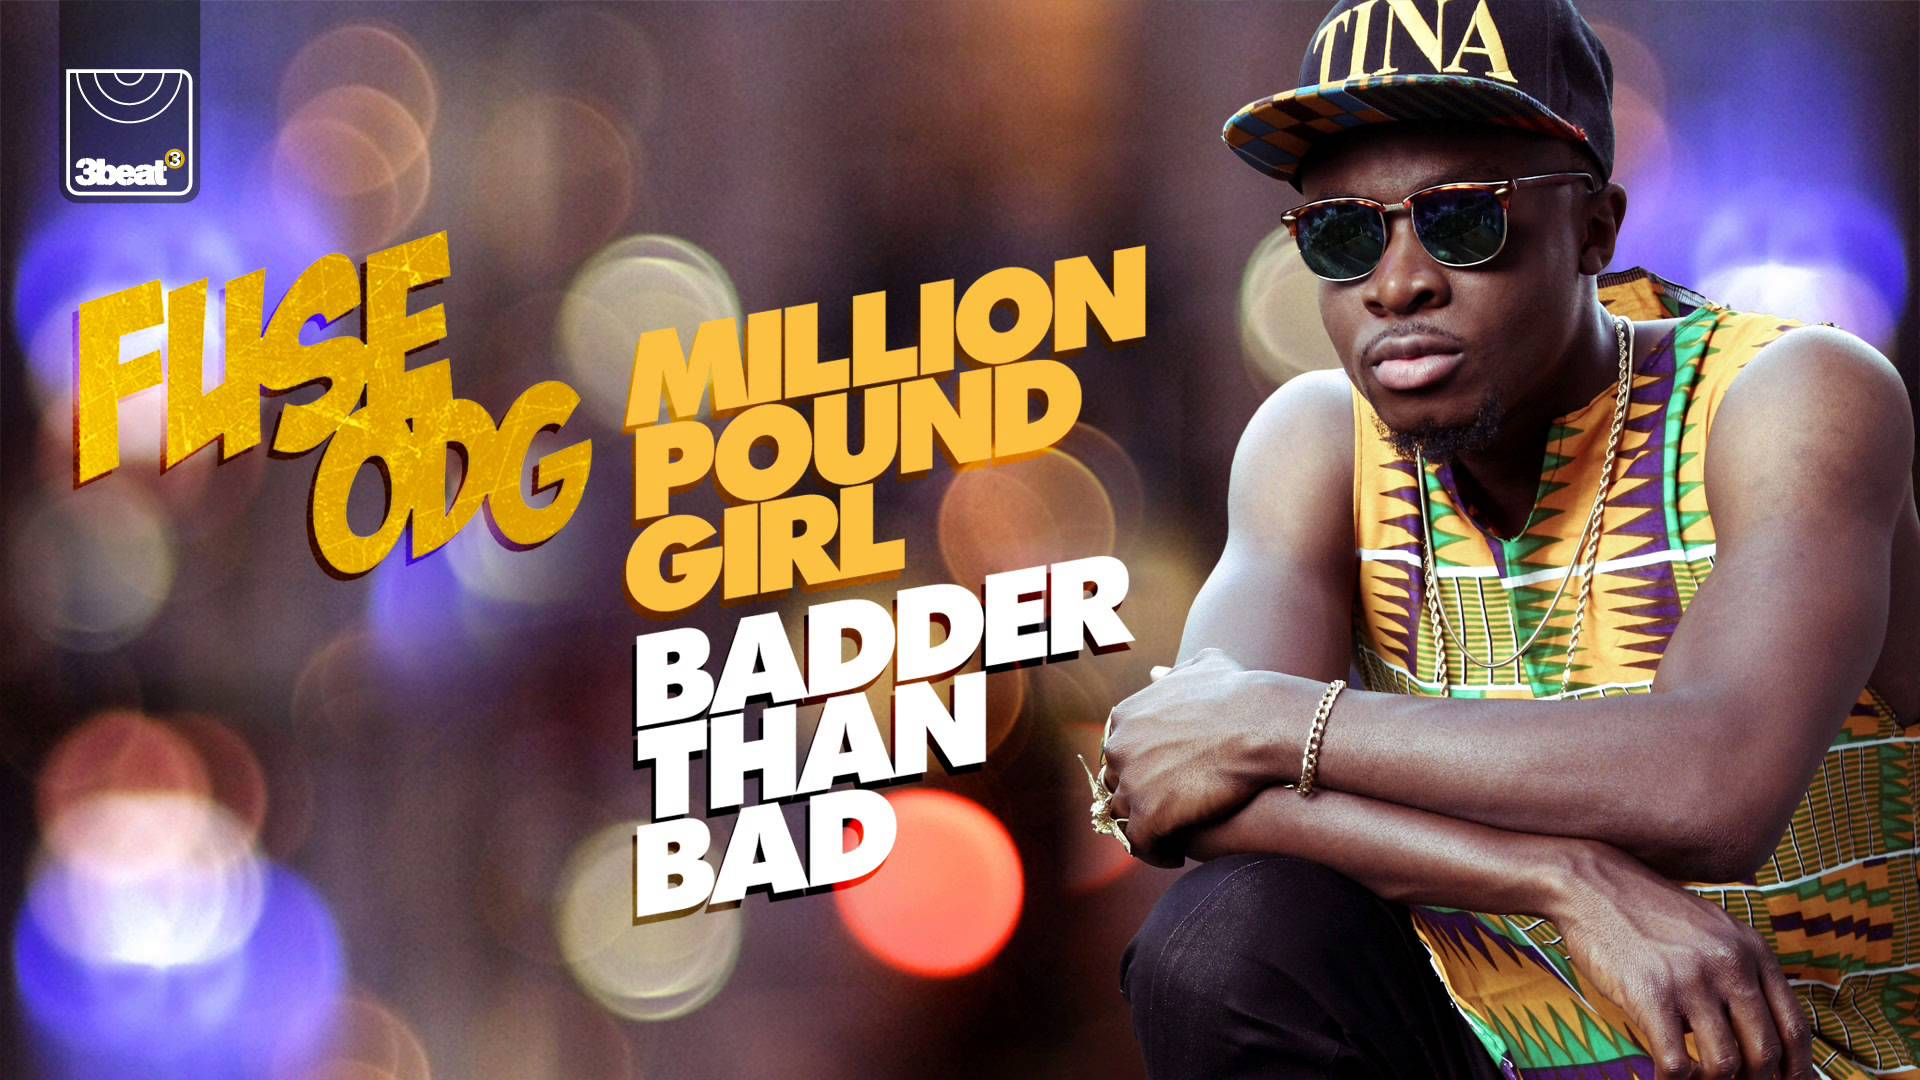 Fuse ODG - Million Pound Girl (Badder Than Bad) Official Music Video